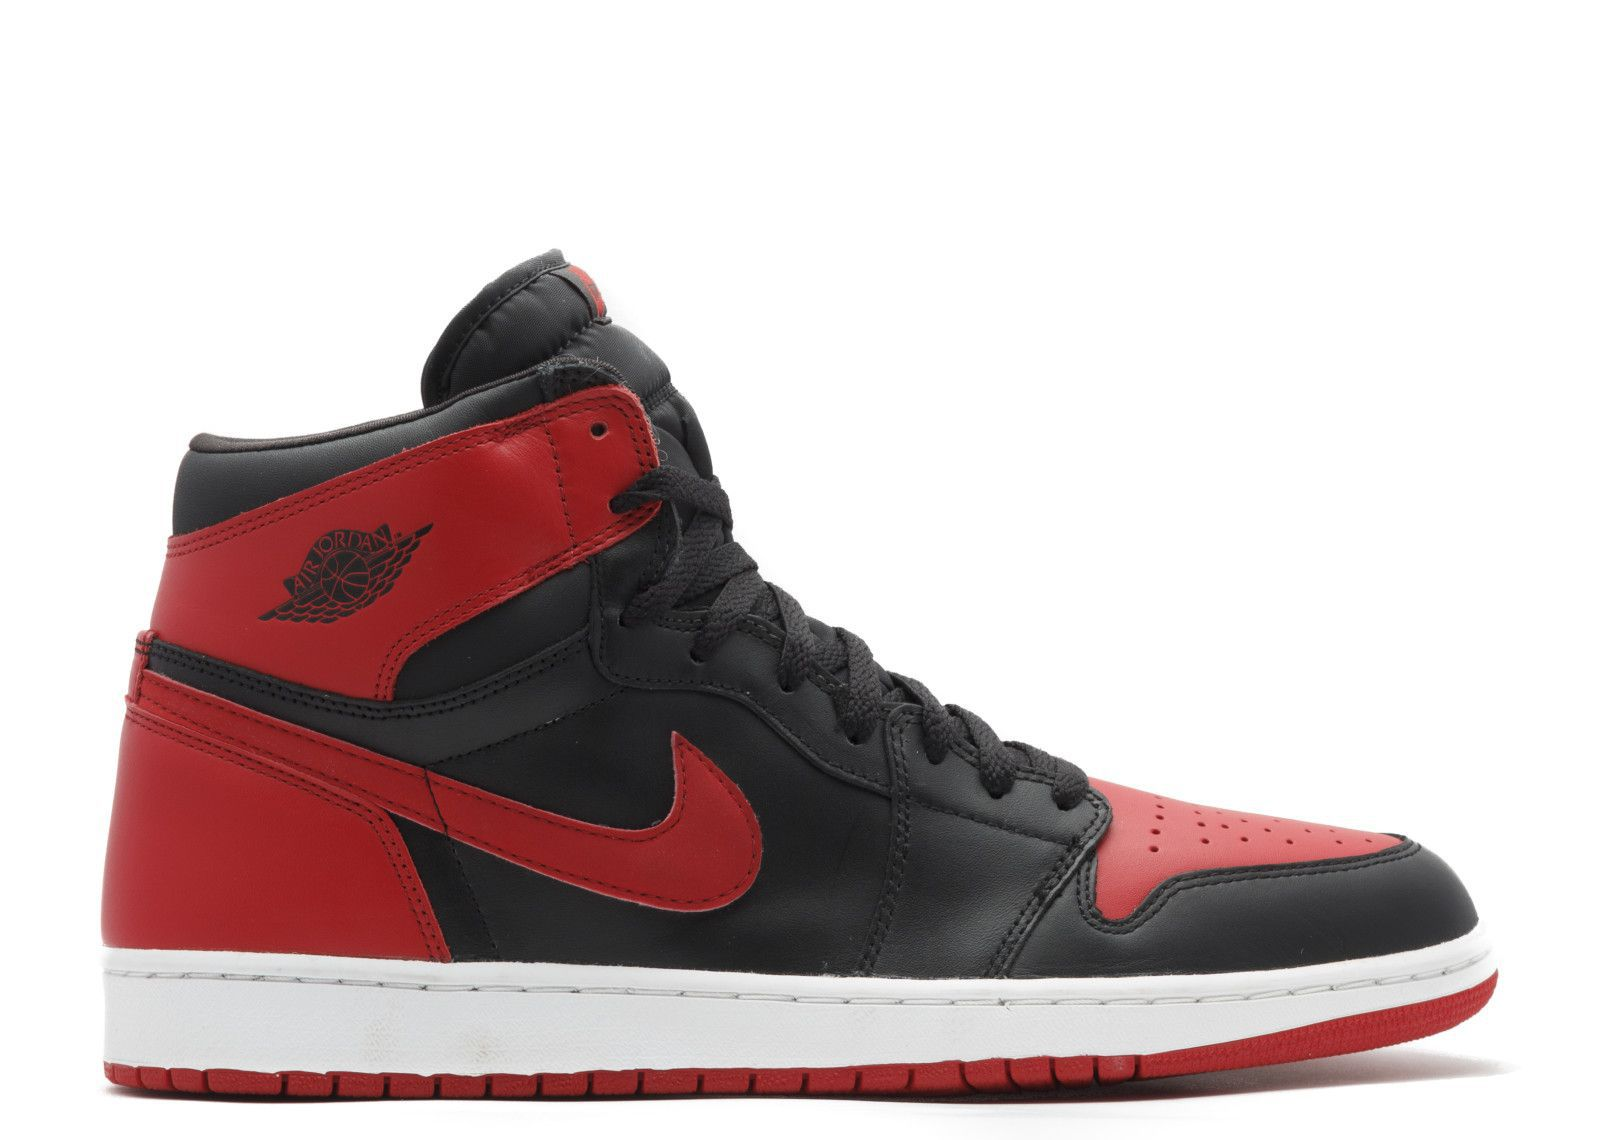 6016a049d8a5d9 Nike Air Jordan1 Retro High Black Basketball Shoes - Buy Nike Air Jordan1  Retro High Black Basketball Shoes Online at Best Prices in India on Snapdeal